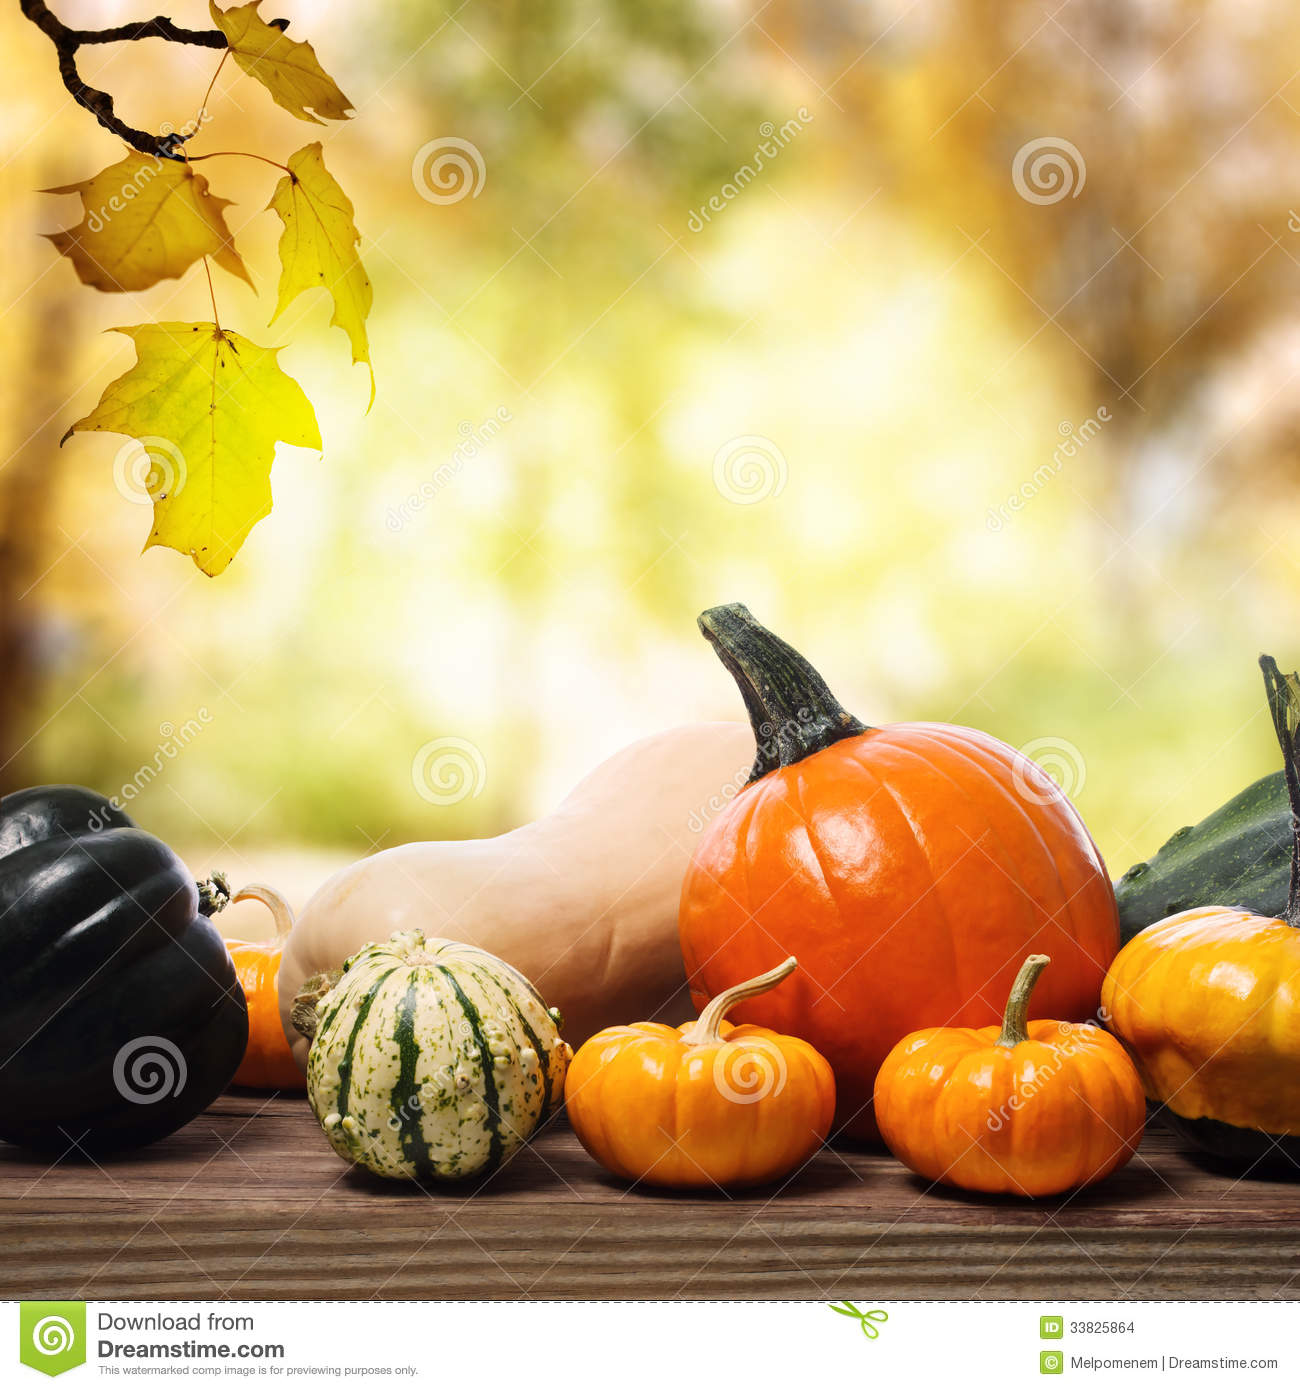 Fall Harvest Wallpaper Hd Pumpkins And Squashes With A Shinning Fall Background